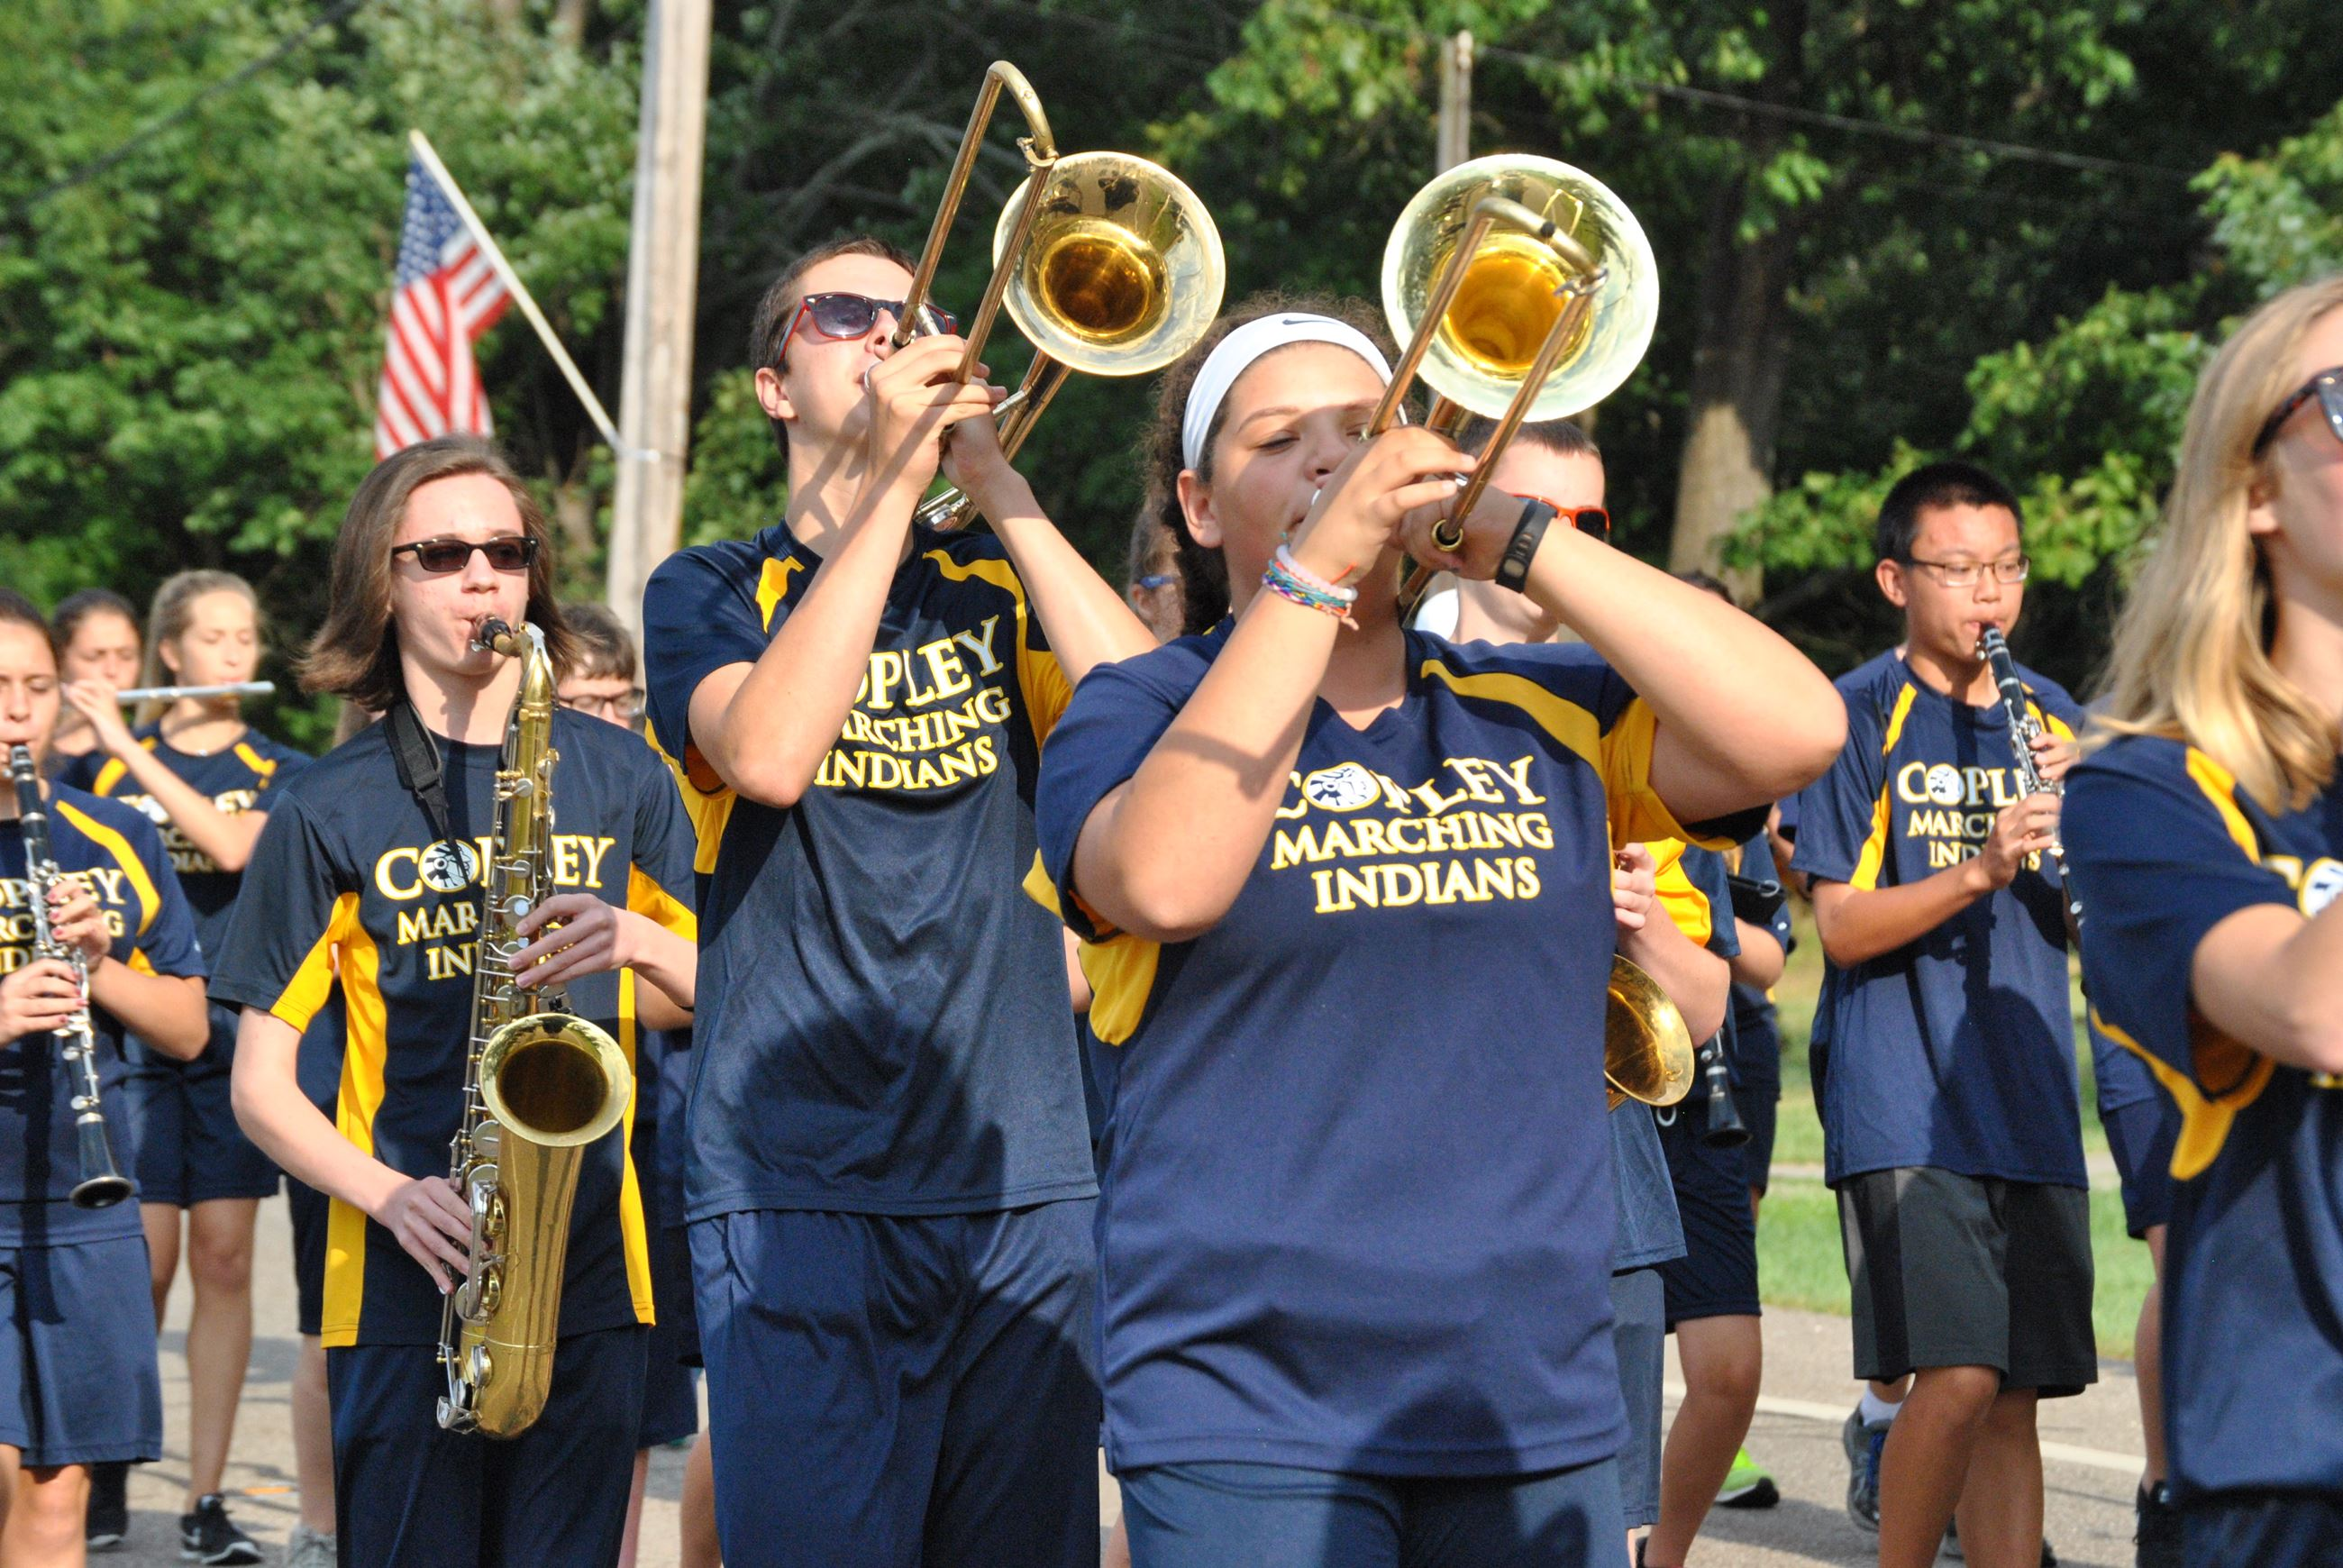 Copley Band Member Marching in parade